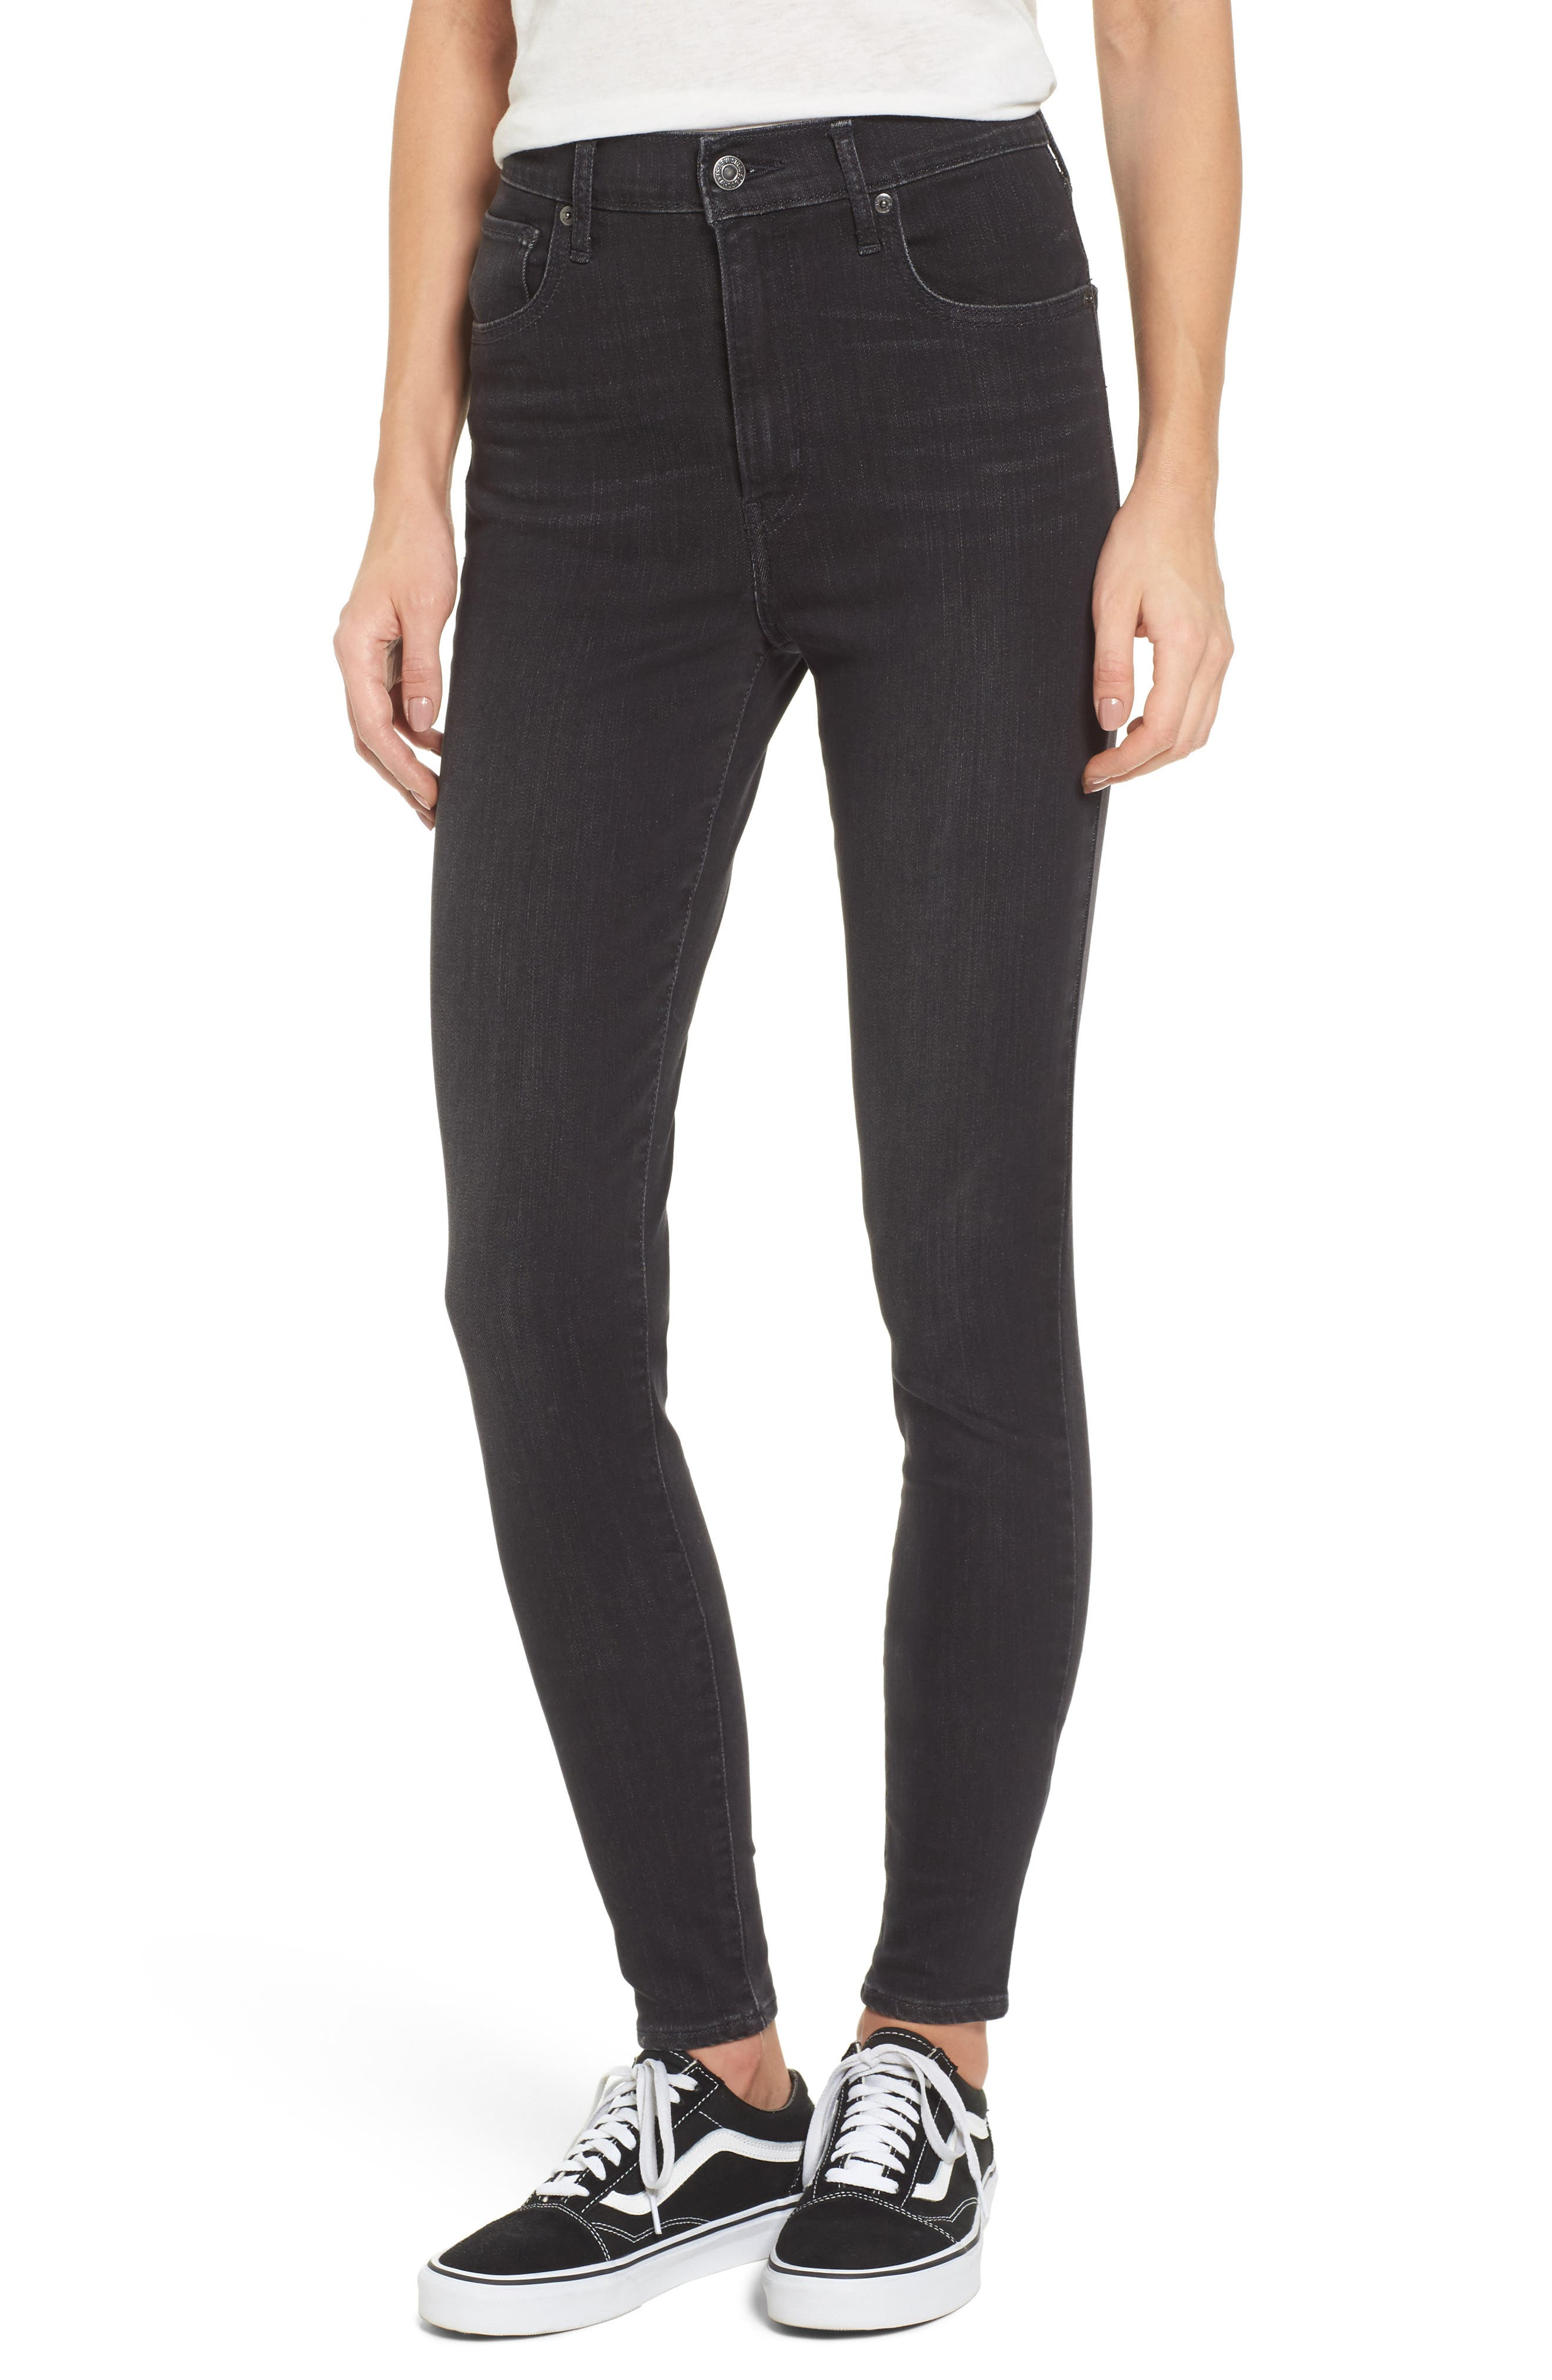 Mile High High Rise Skinny Jeans,                         Main,                         color, Faded Ink